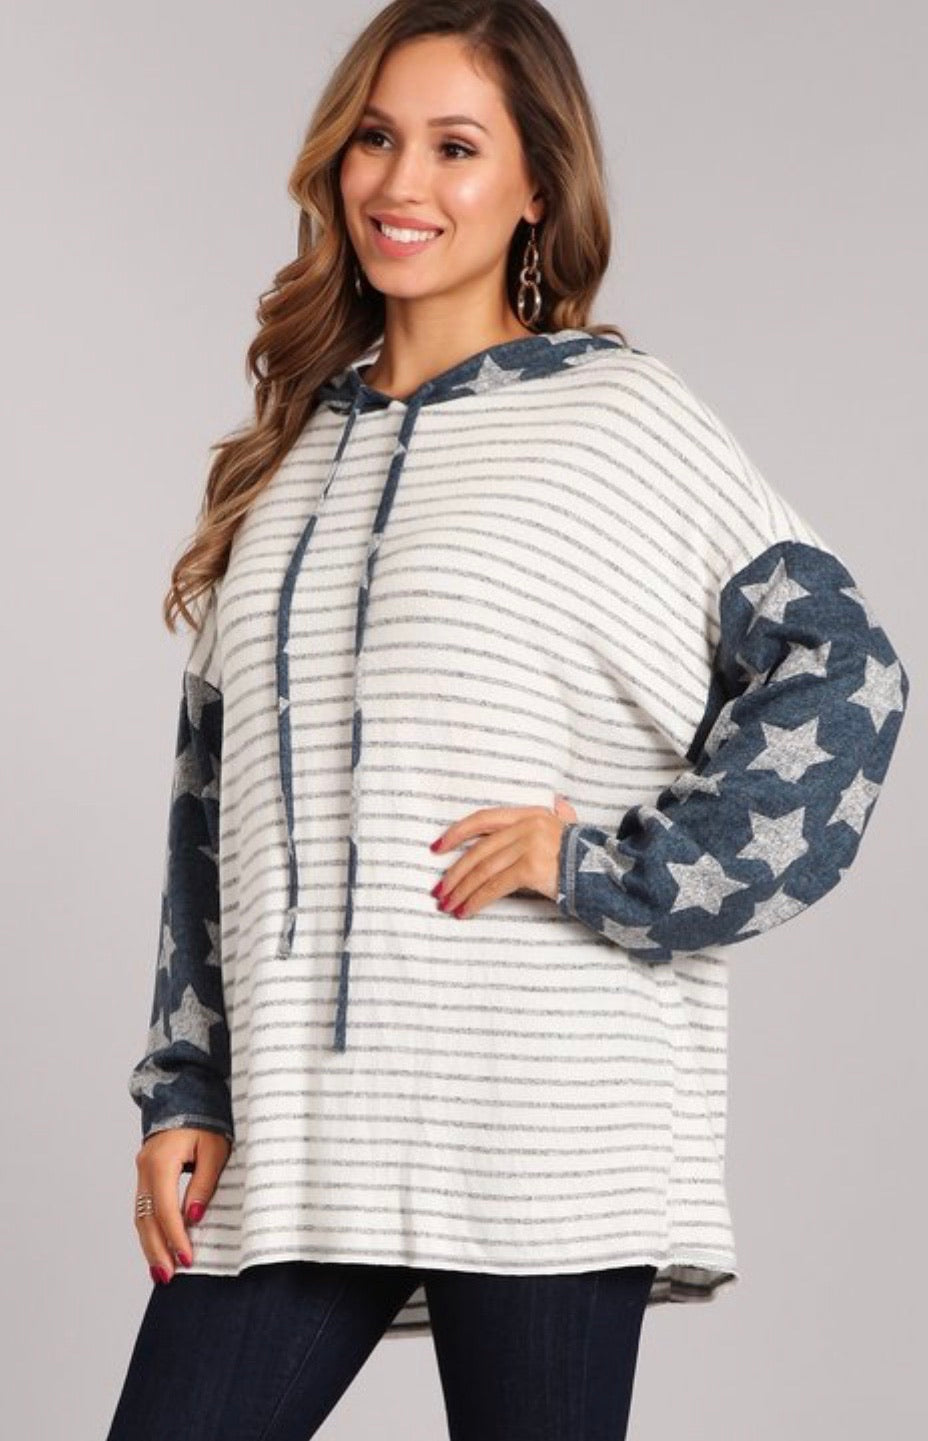 Stars and Stripes Hooded Sweatshirt